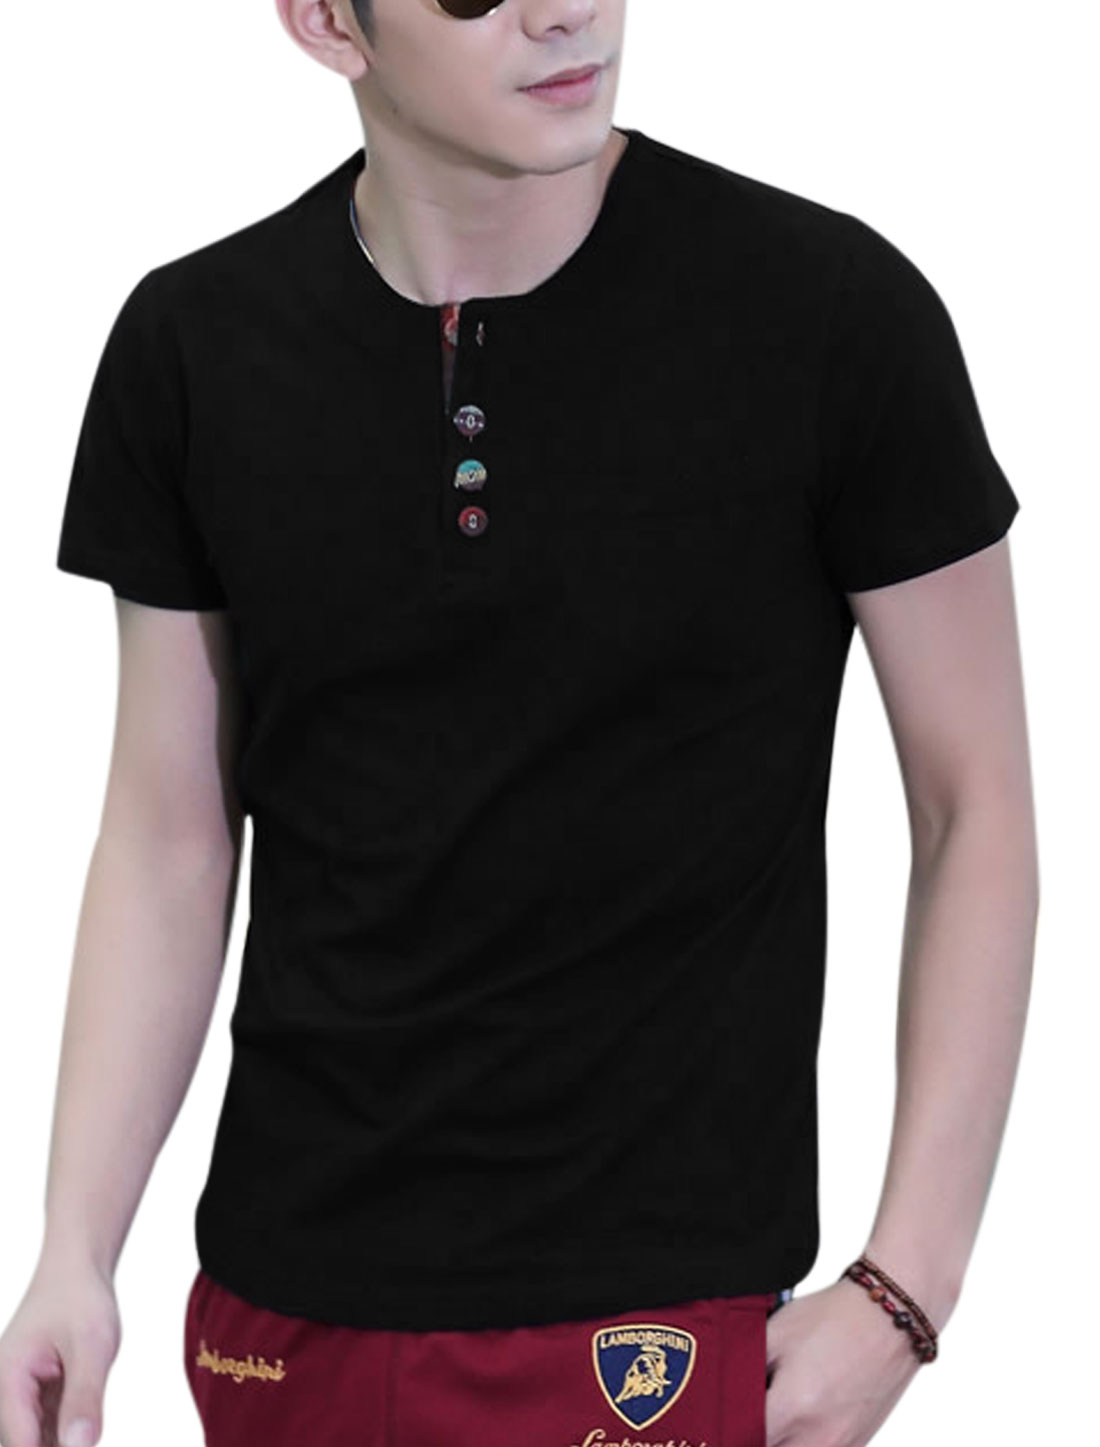 Round Neck Short Sleeve 1/4 Placket Slim Fit T-Shirt for Men Black L